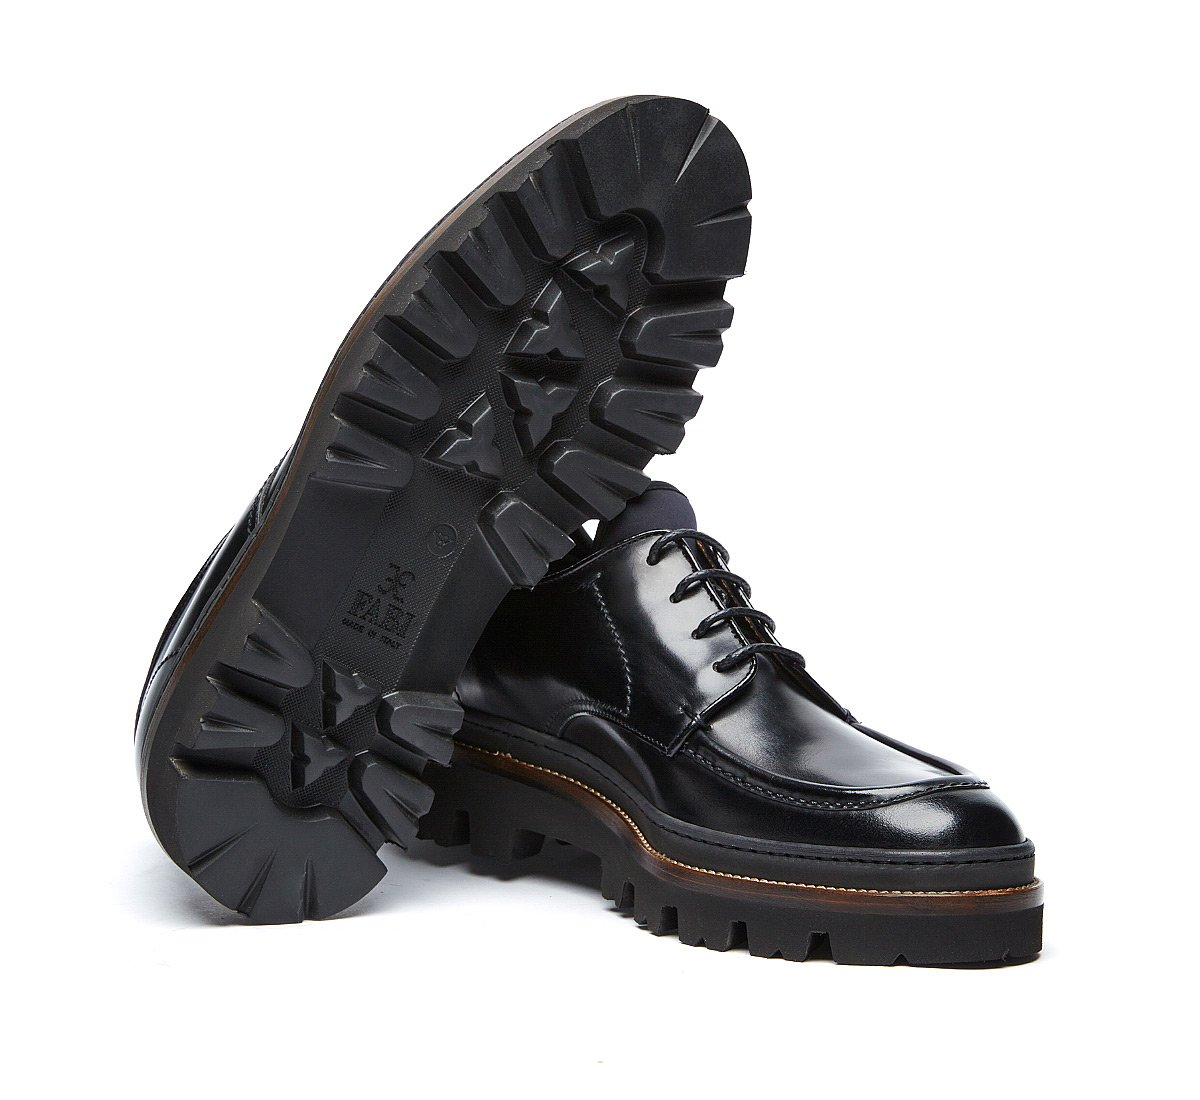 Fabi lace-ups in luxury calf leather